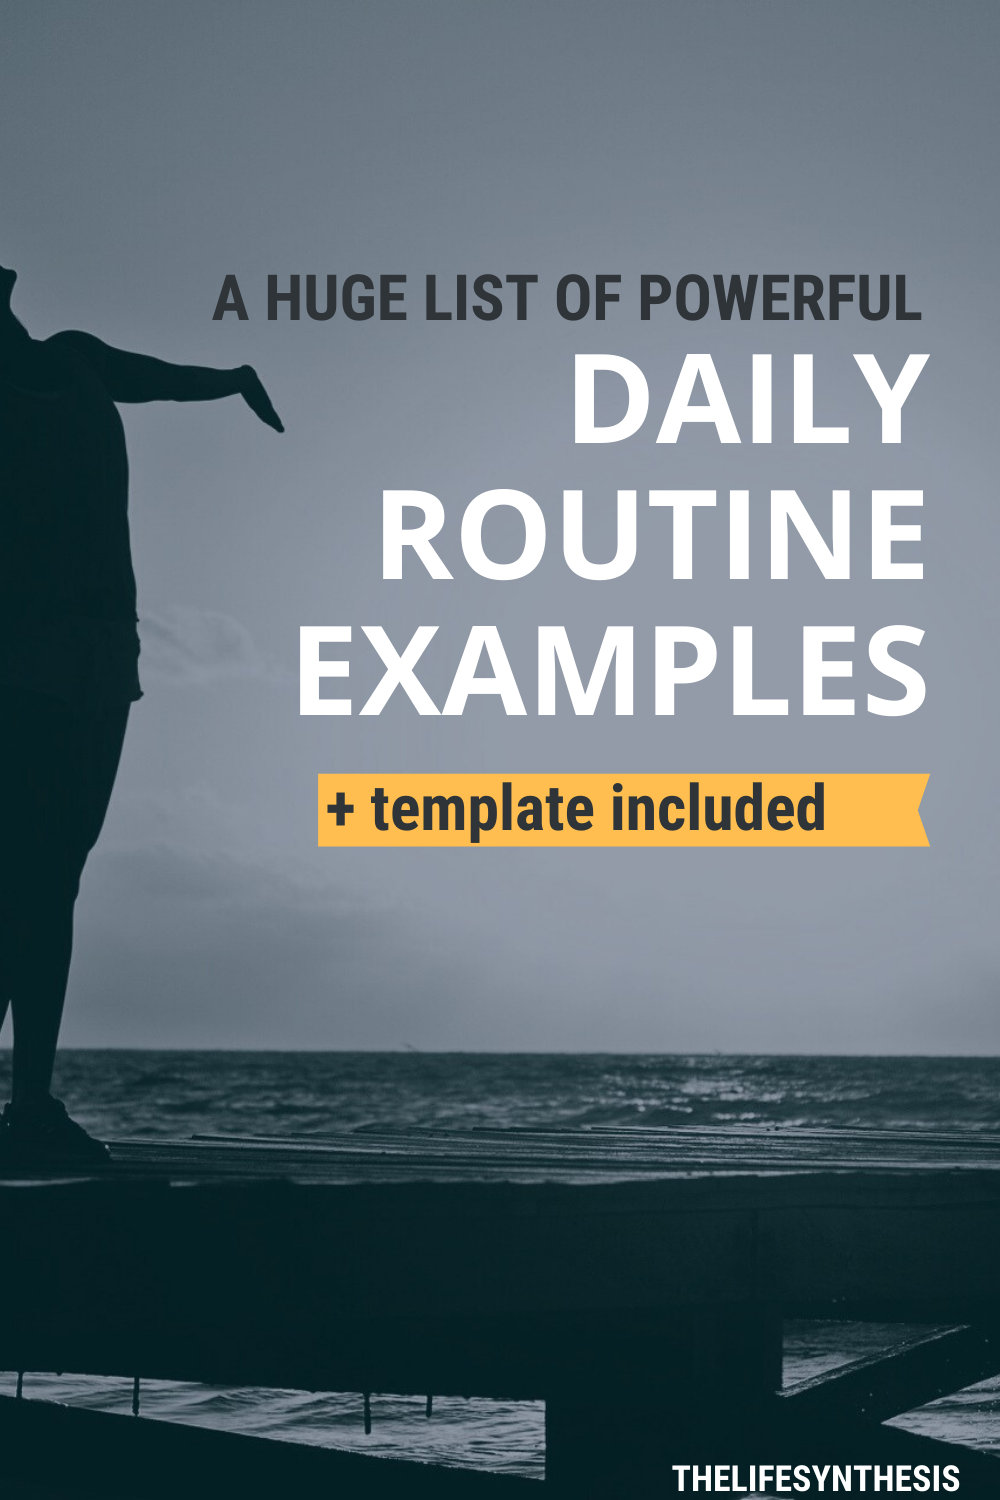 55 Daily Routine Examples for all walks of life